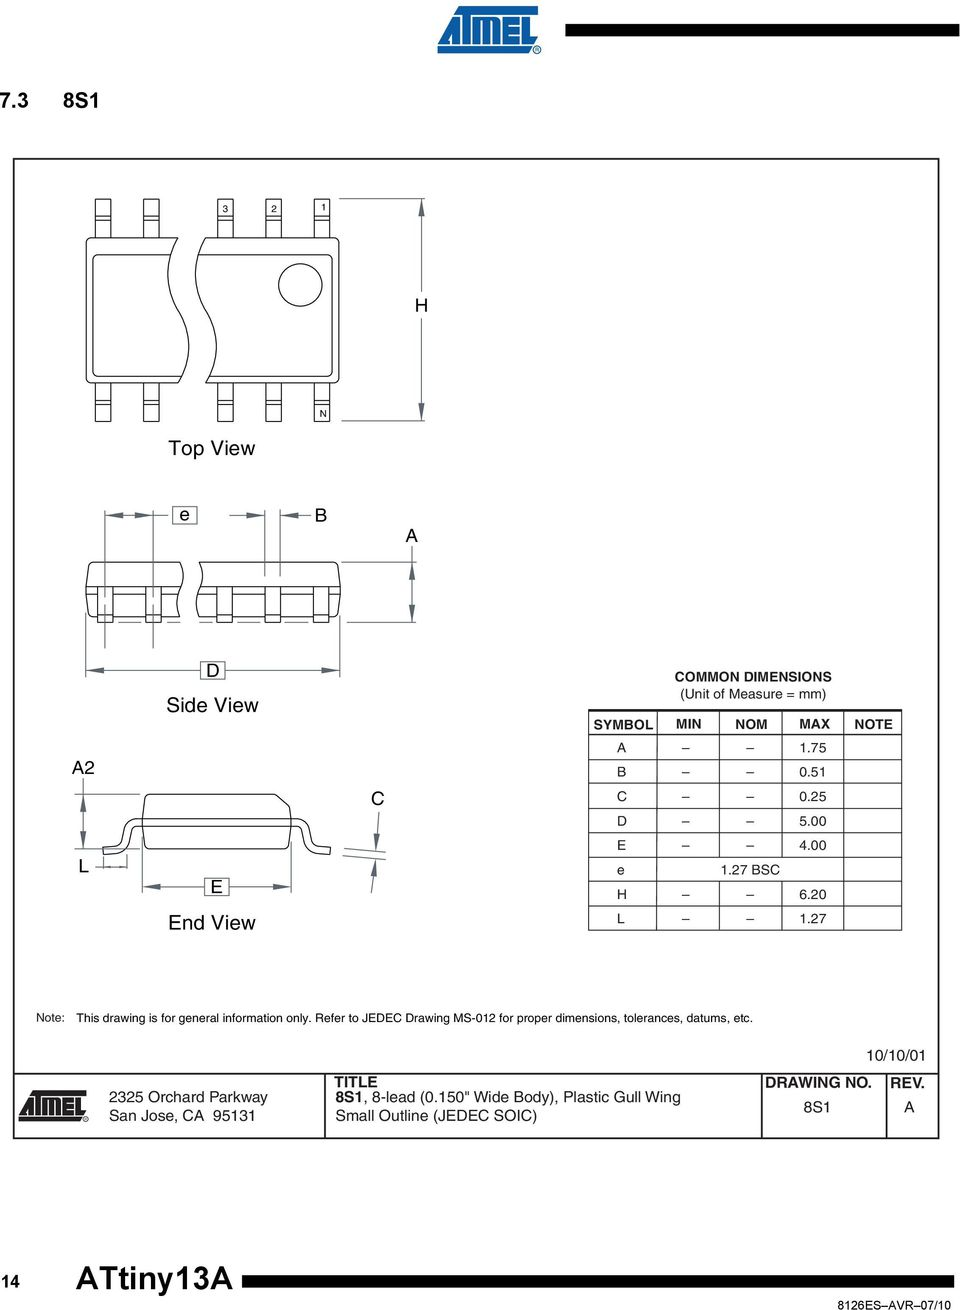 Refer to JEDEC Drawing MS-012 for proper dimensions, tolerances, datums, etc.